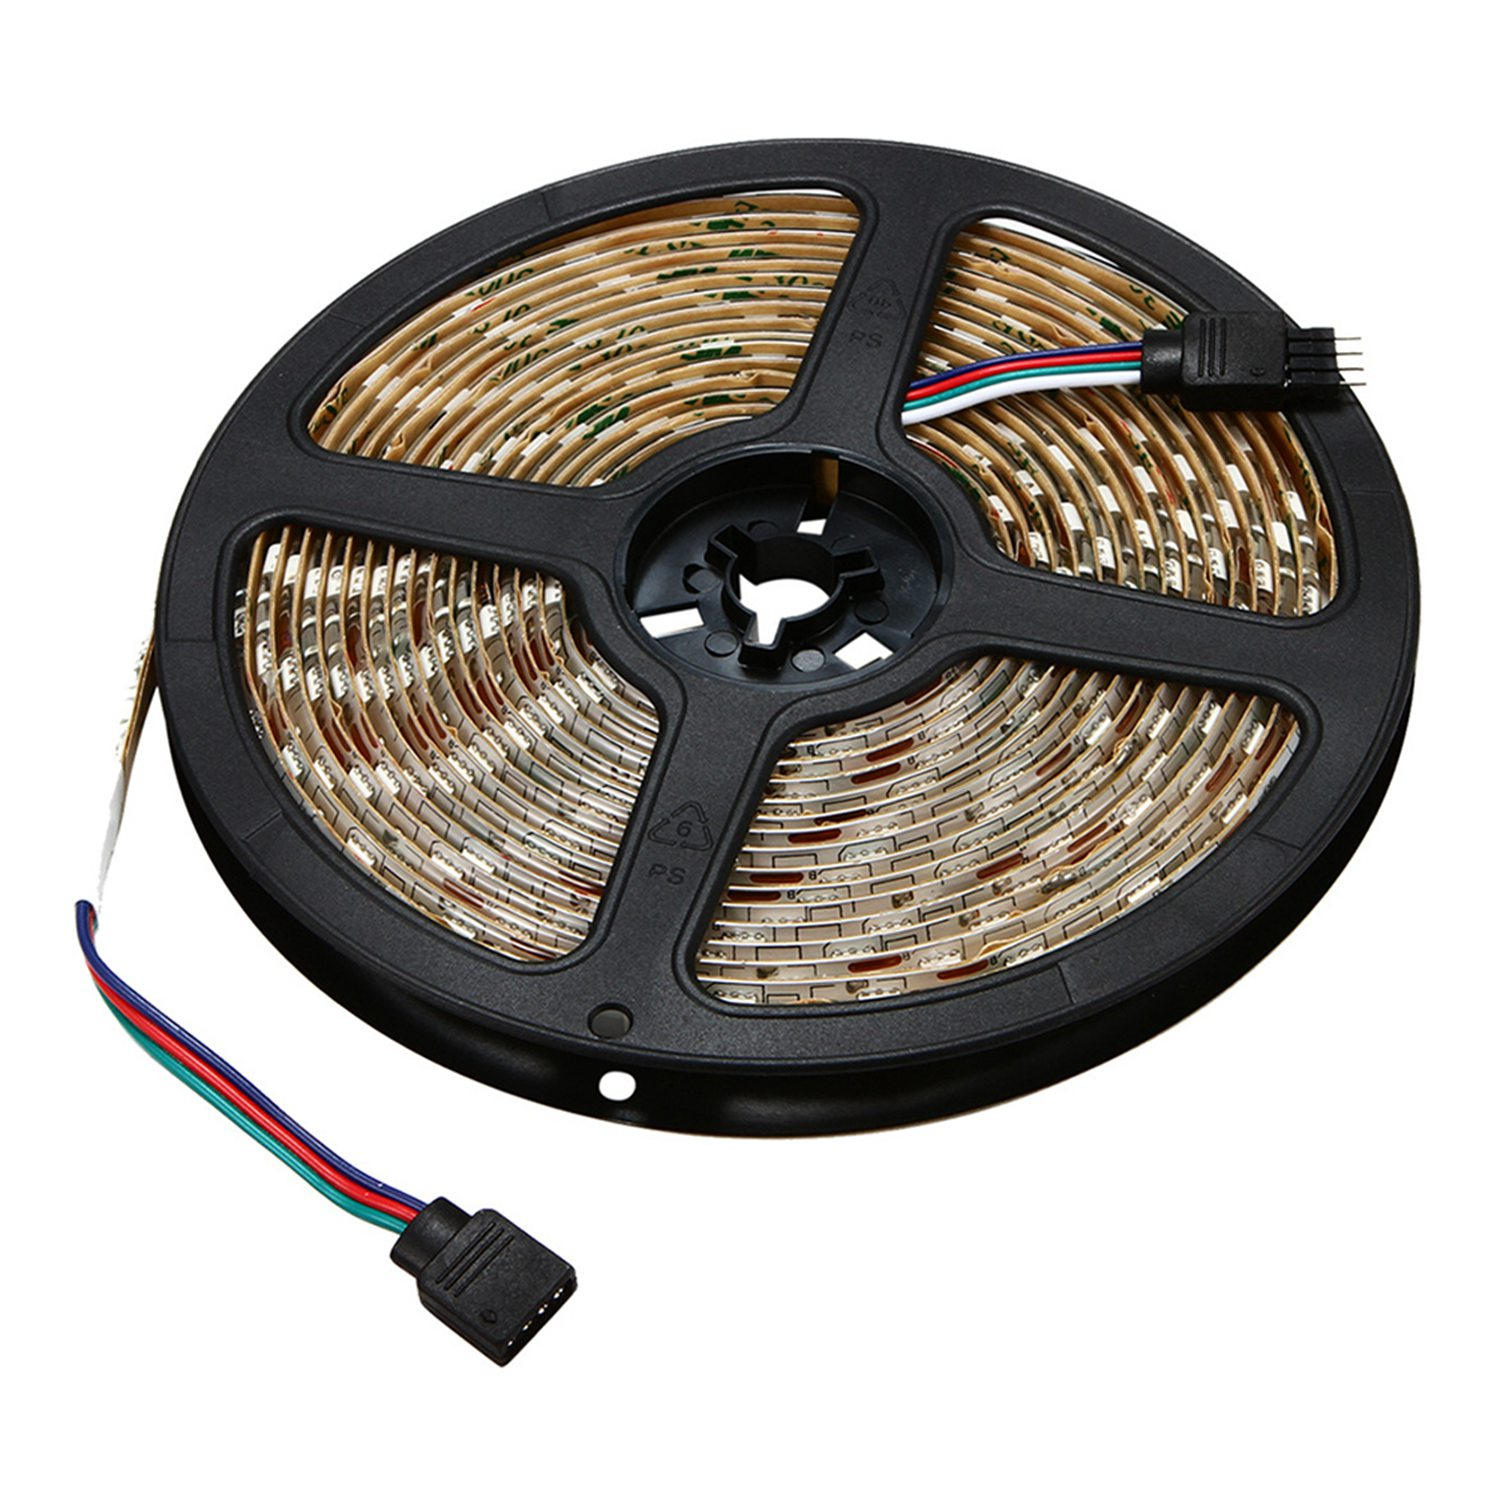 5M/16.4 Ft Smd 5050 Rgb 300 Led Color Changing Kit With Flexible Strip Light+44 Key Ir Remote Control+Power Supply